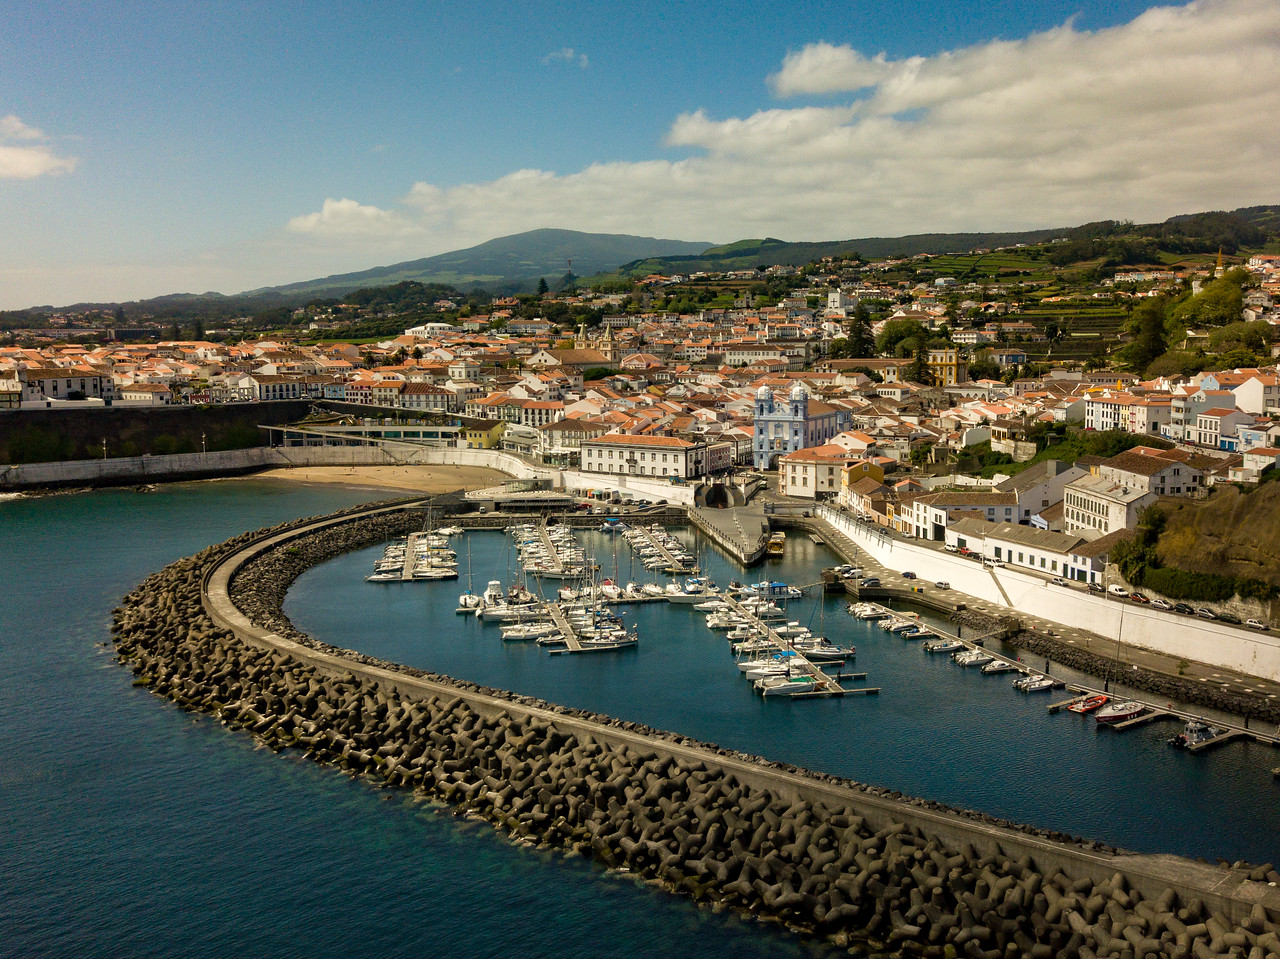 Wandering the Streets of Angra do Heroísmo is a top thing to do on Terceira Islands in the Azores